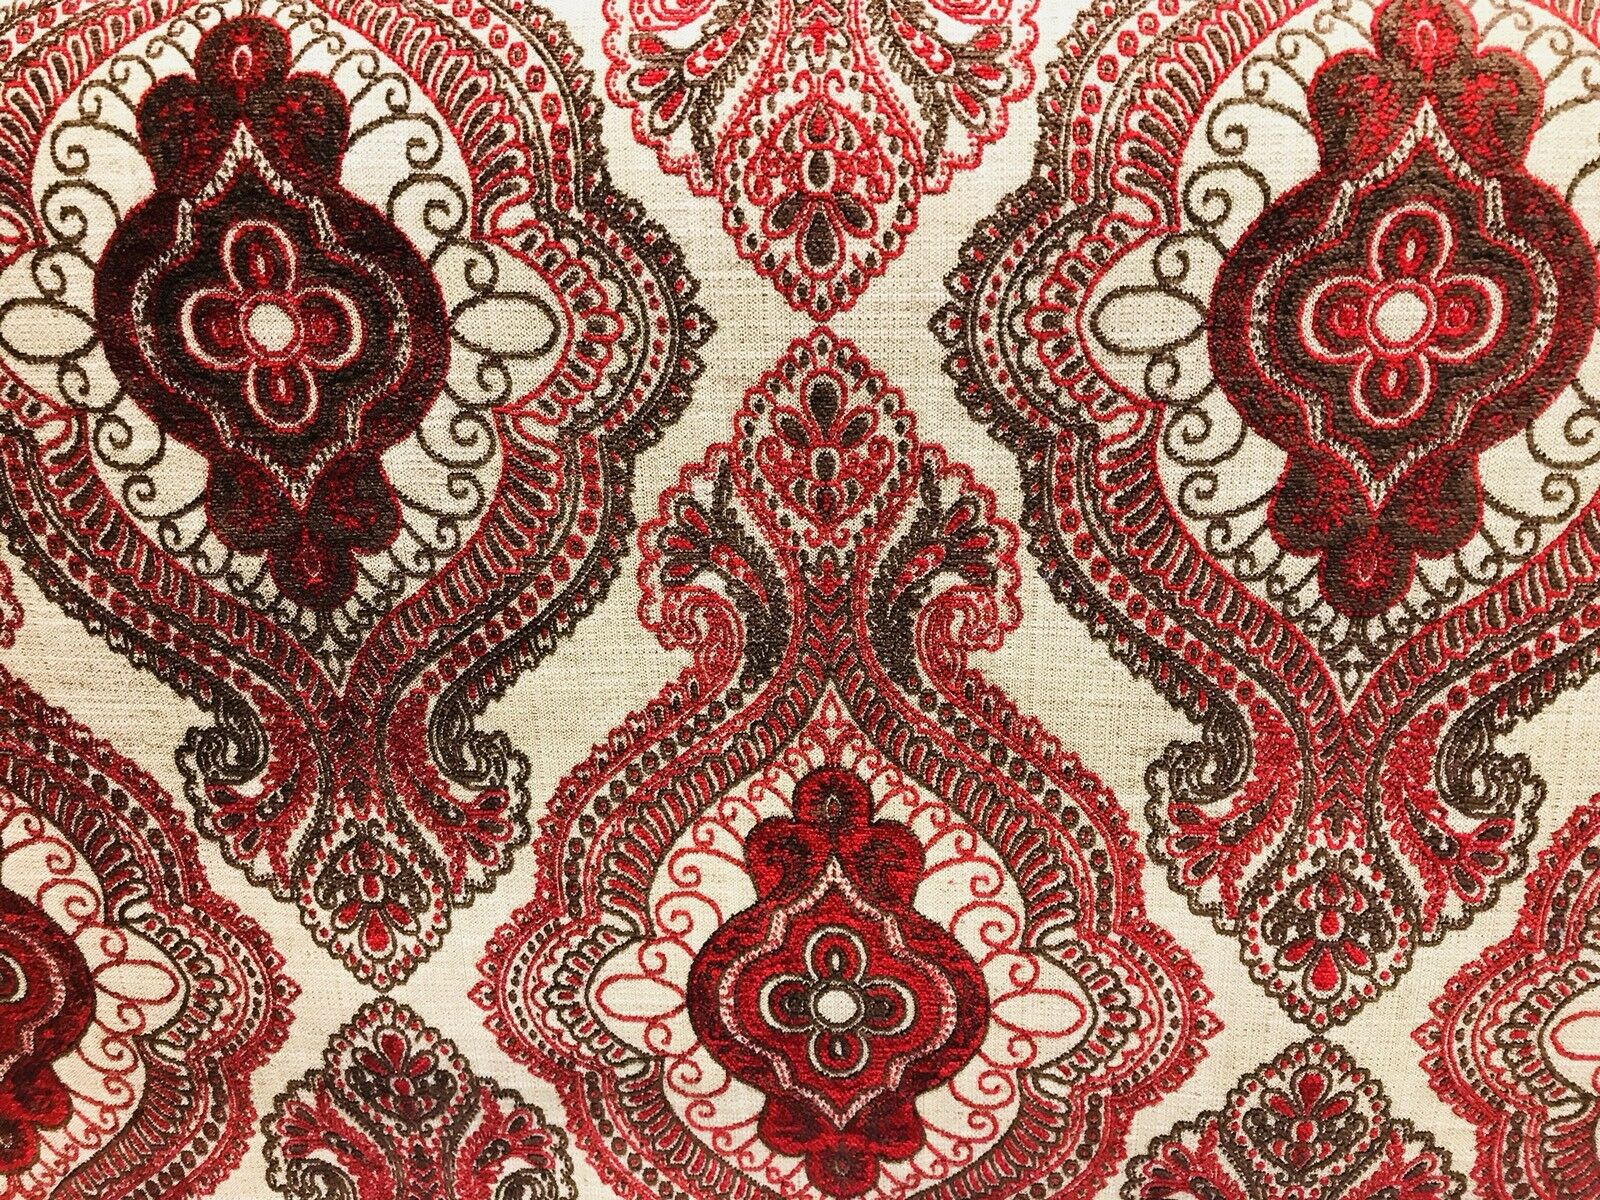 SWATCH Designer Burnout Linen Inspired Upholstery Fabric- Red And Flax